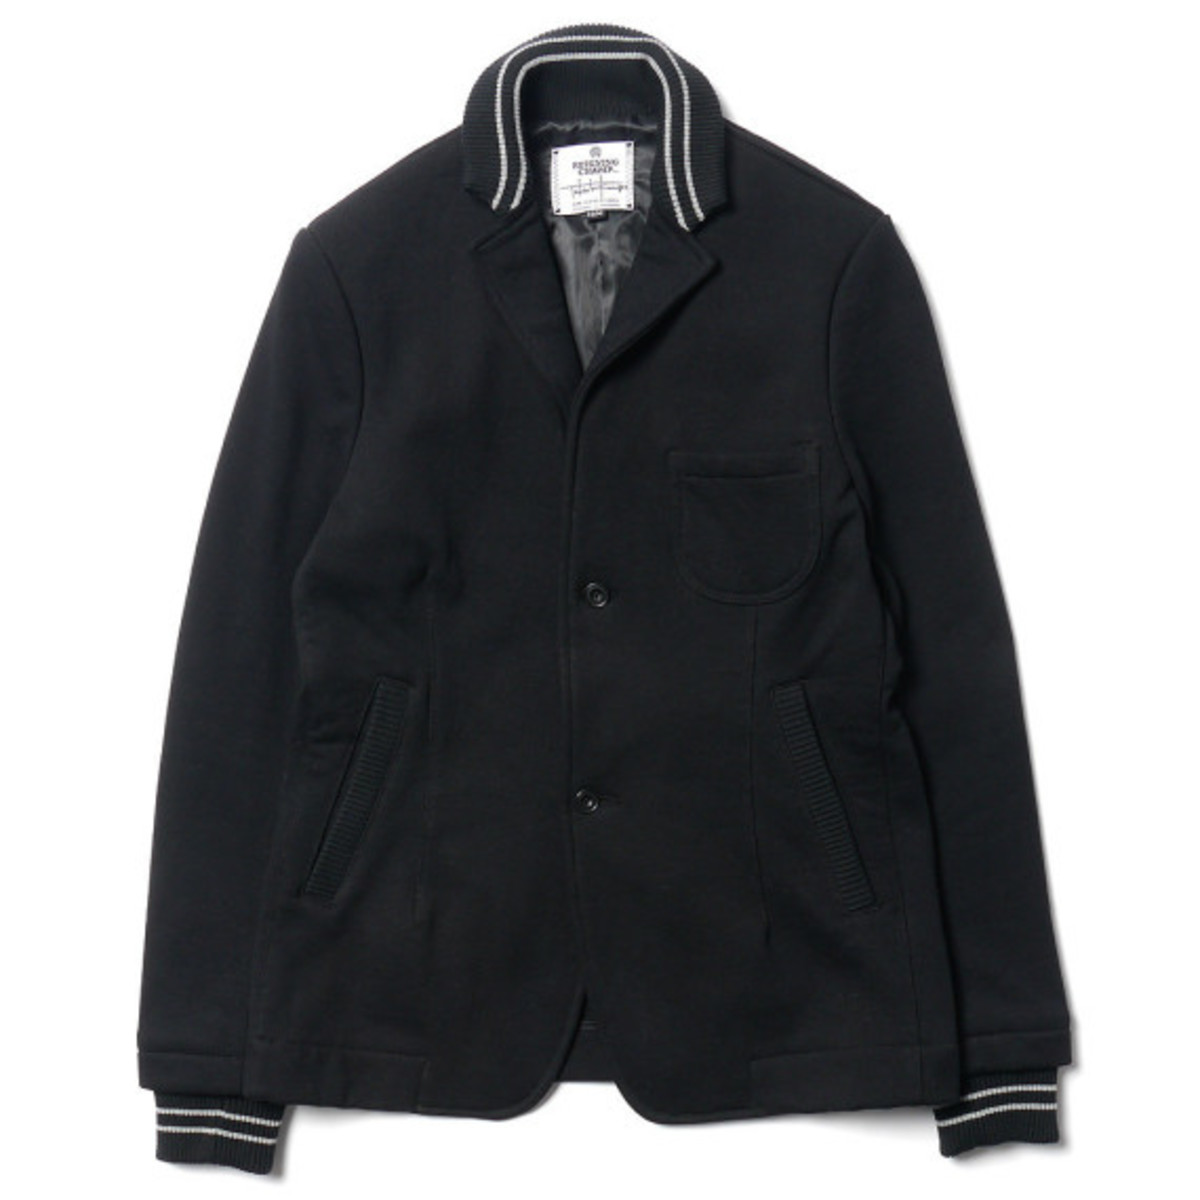 takashi-kumagai-reigning-champ-heavyweight-fleece-blazer-02